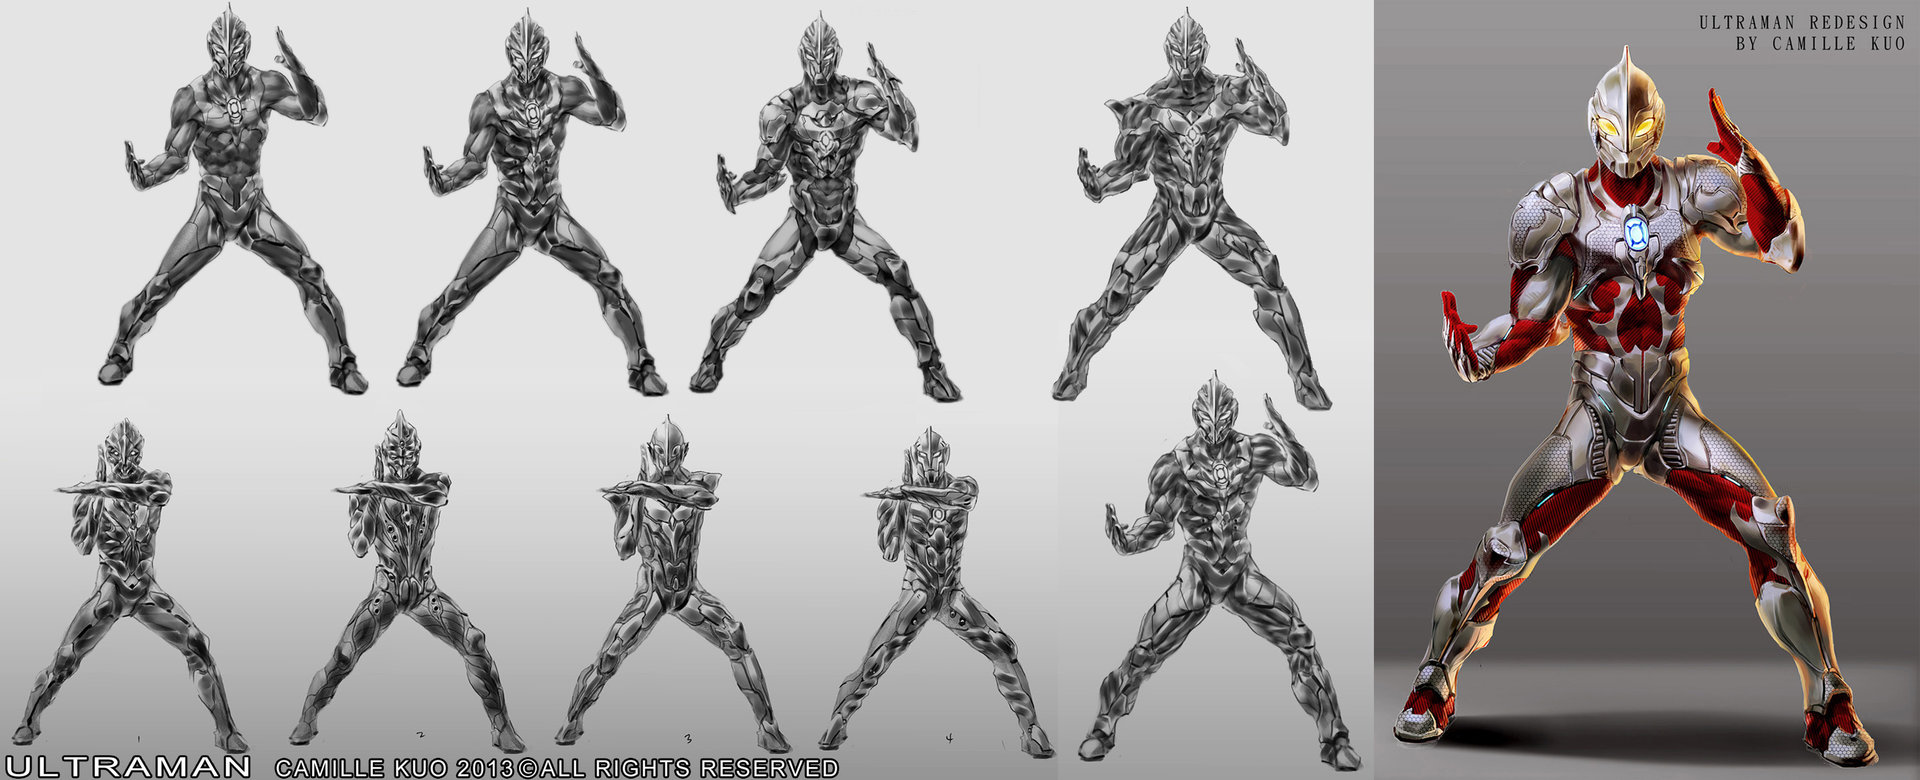 Camille kuo ultraman concept camillekuo